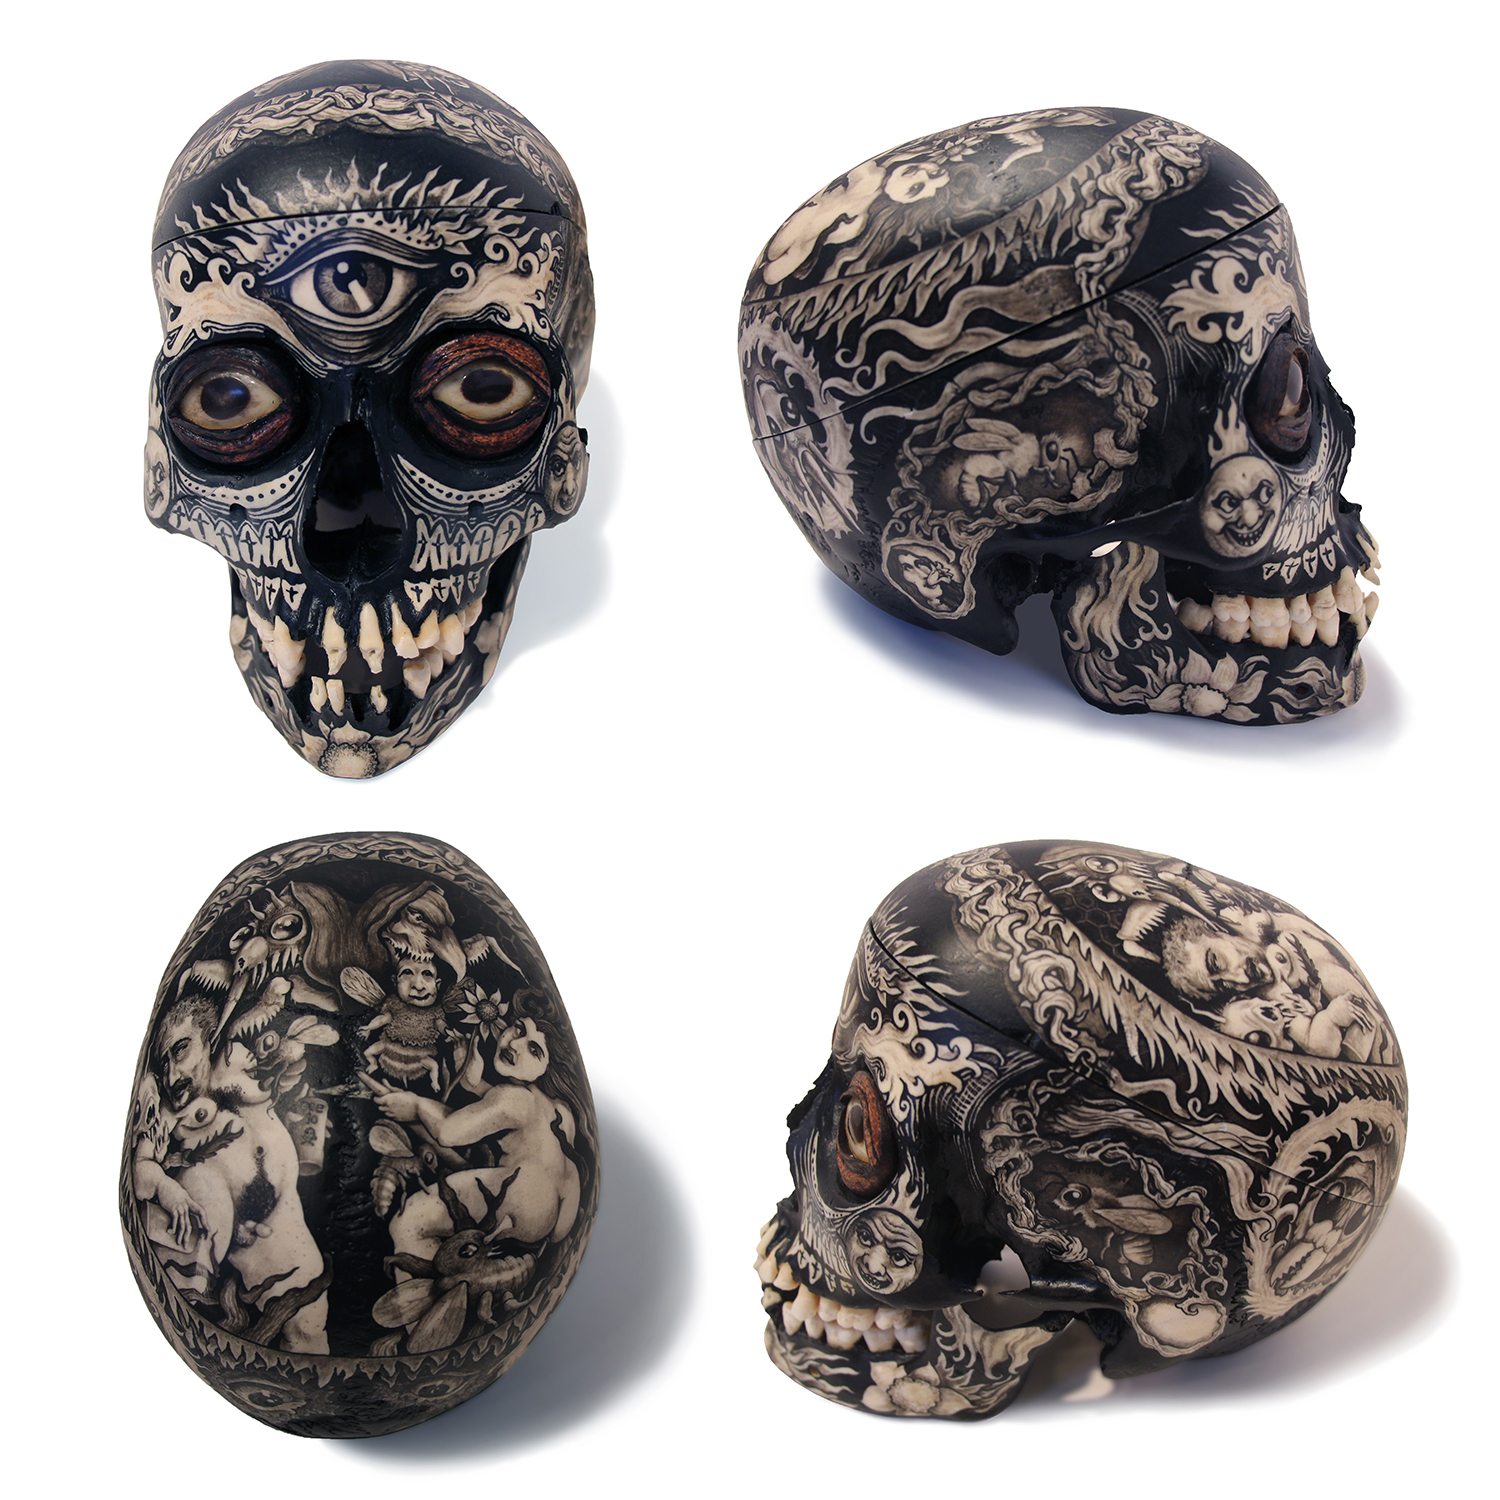 Brushed ink & pyrography on real human skull with hand tooled interior & taxidermied eyes, 9 x 6 x 7 in. $3,000.00 Sold